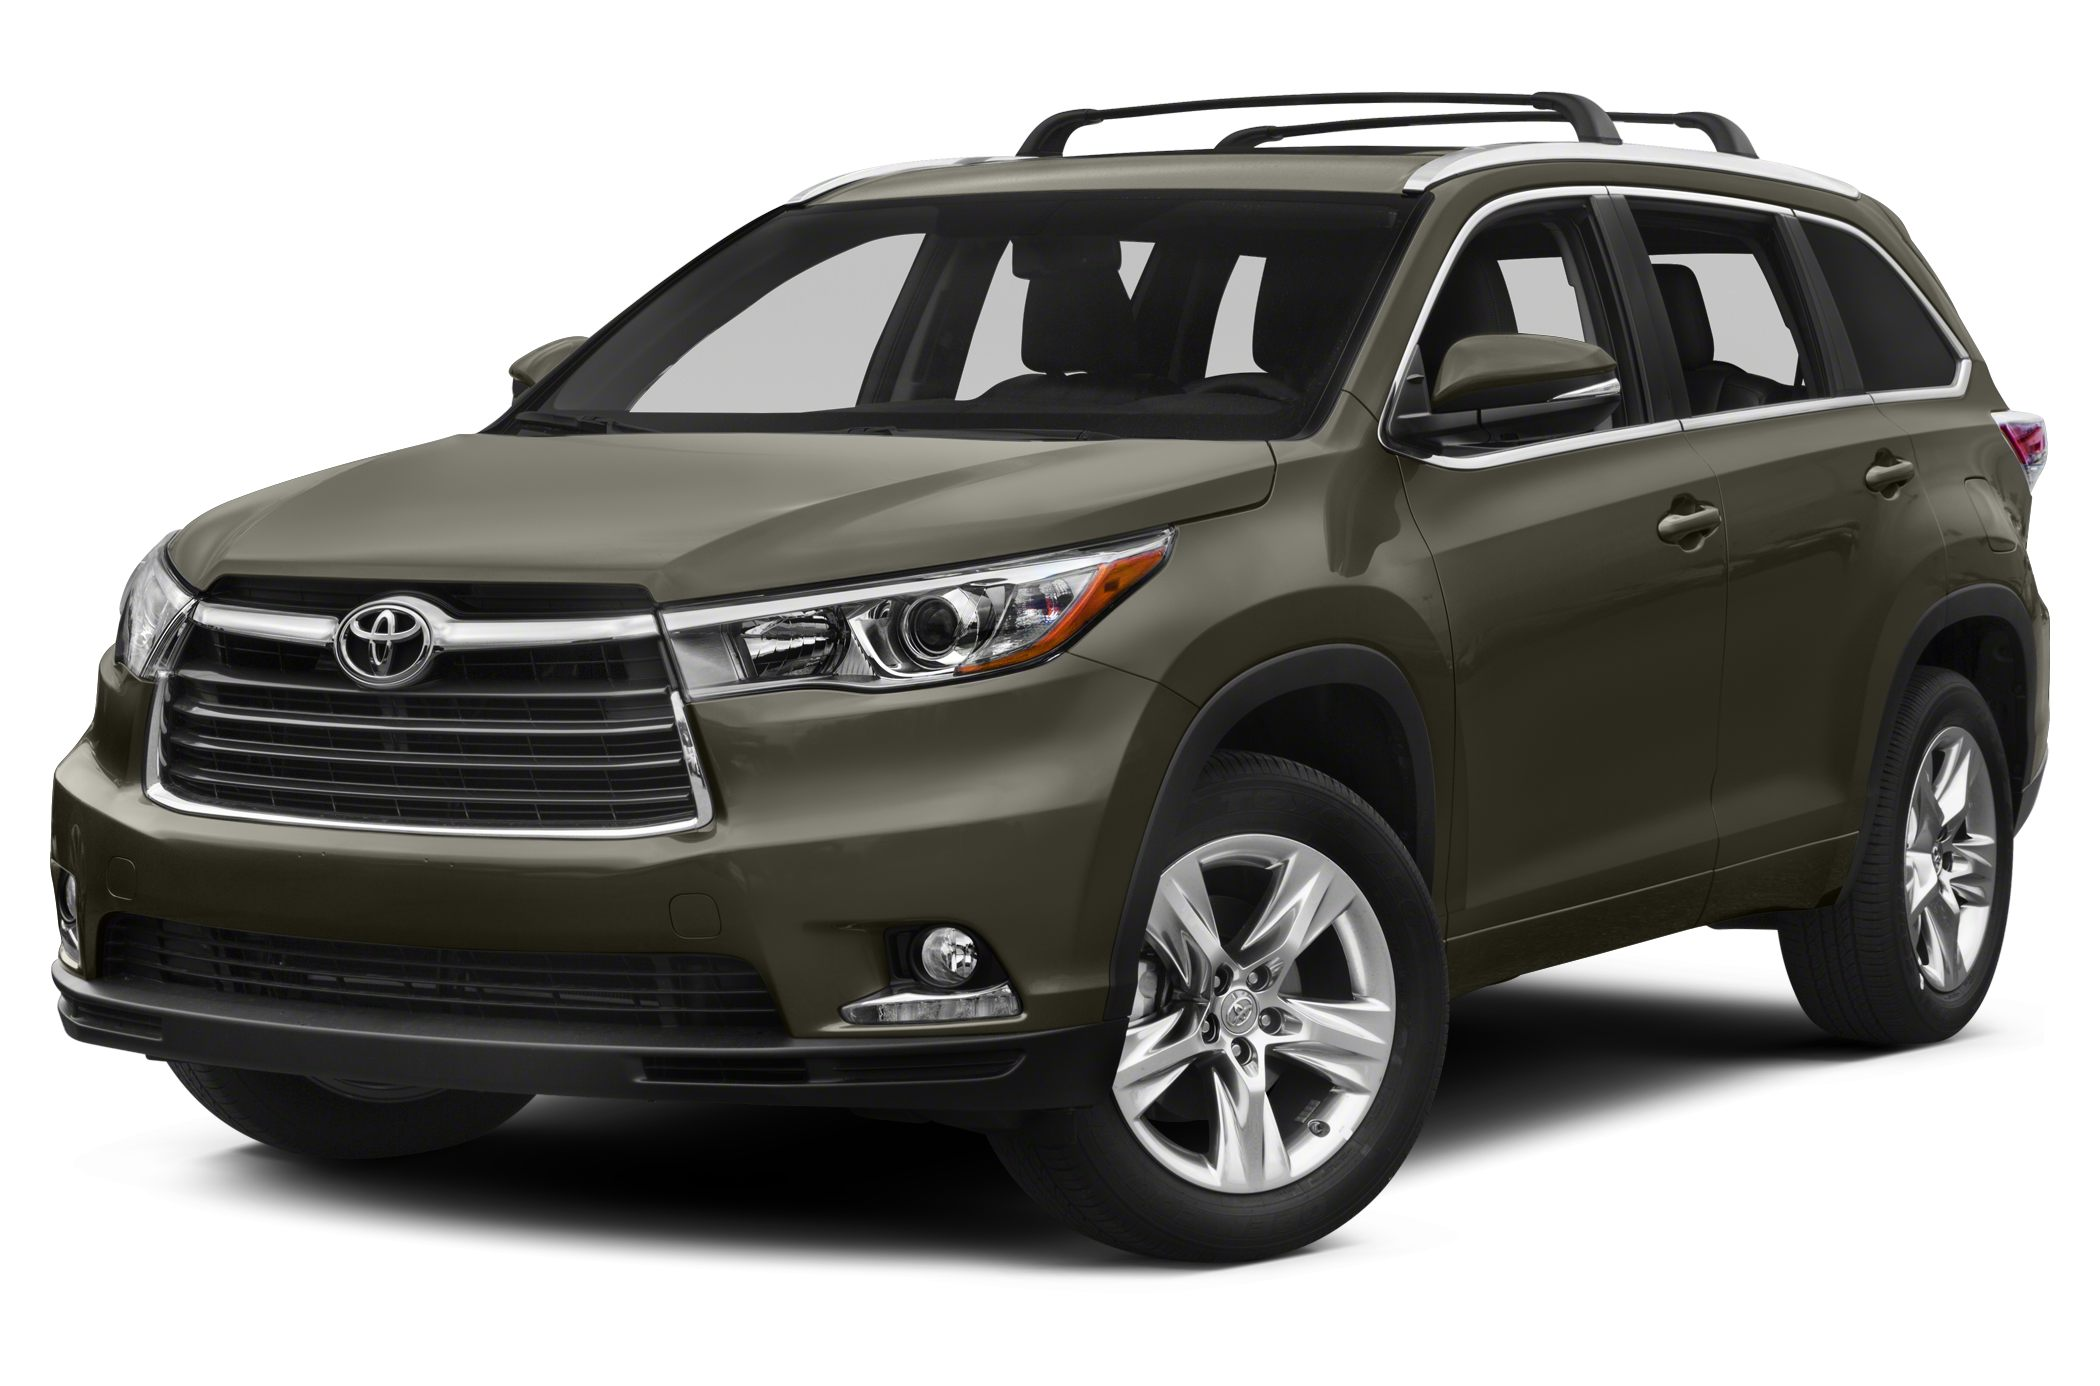 2015 Toyota Highlander XLE SUV for sale in North Augusta for $36,998 with 10 miles